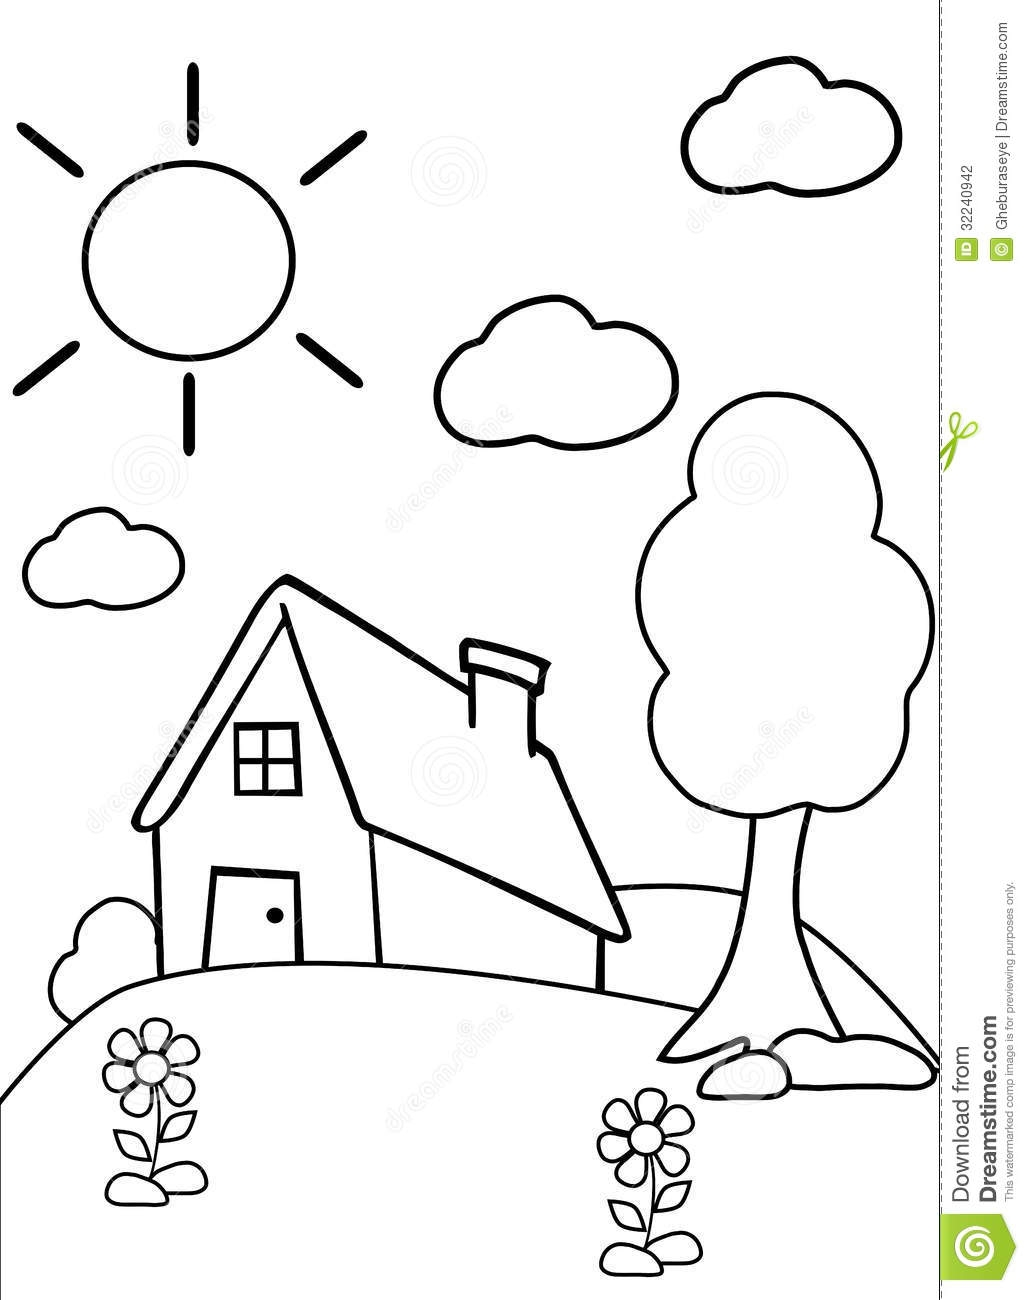 coloring pages for 2 year olds - stock photography color house illustration children who can colors like most learning to stay margins image